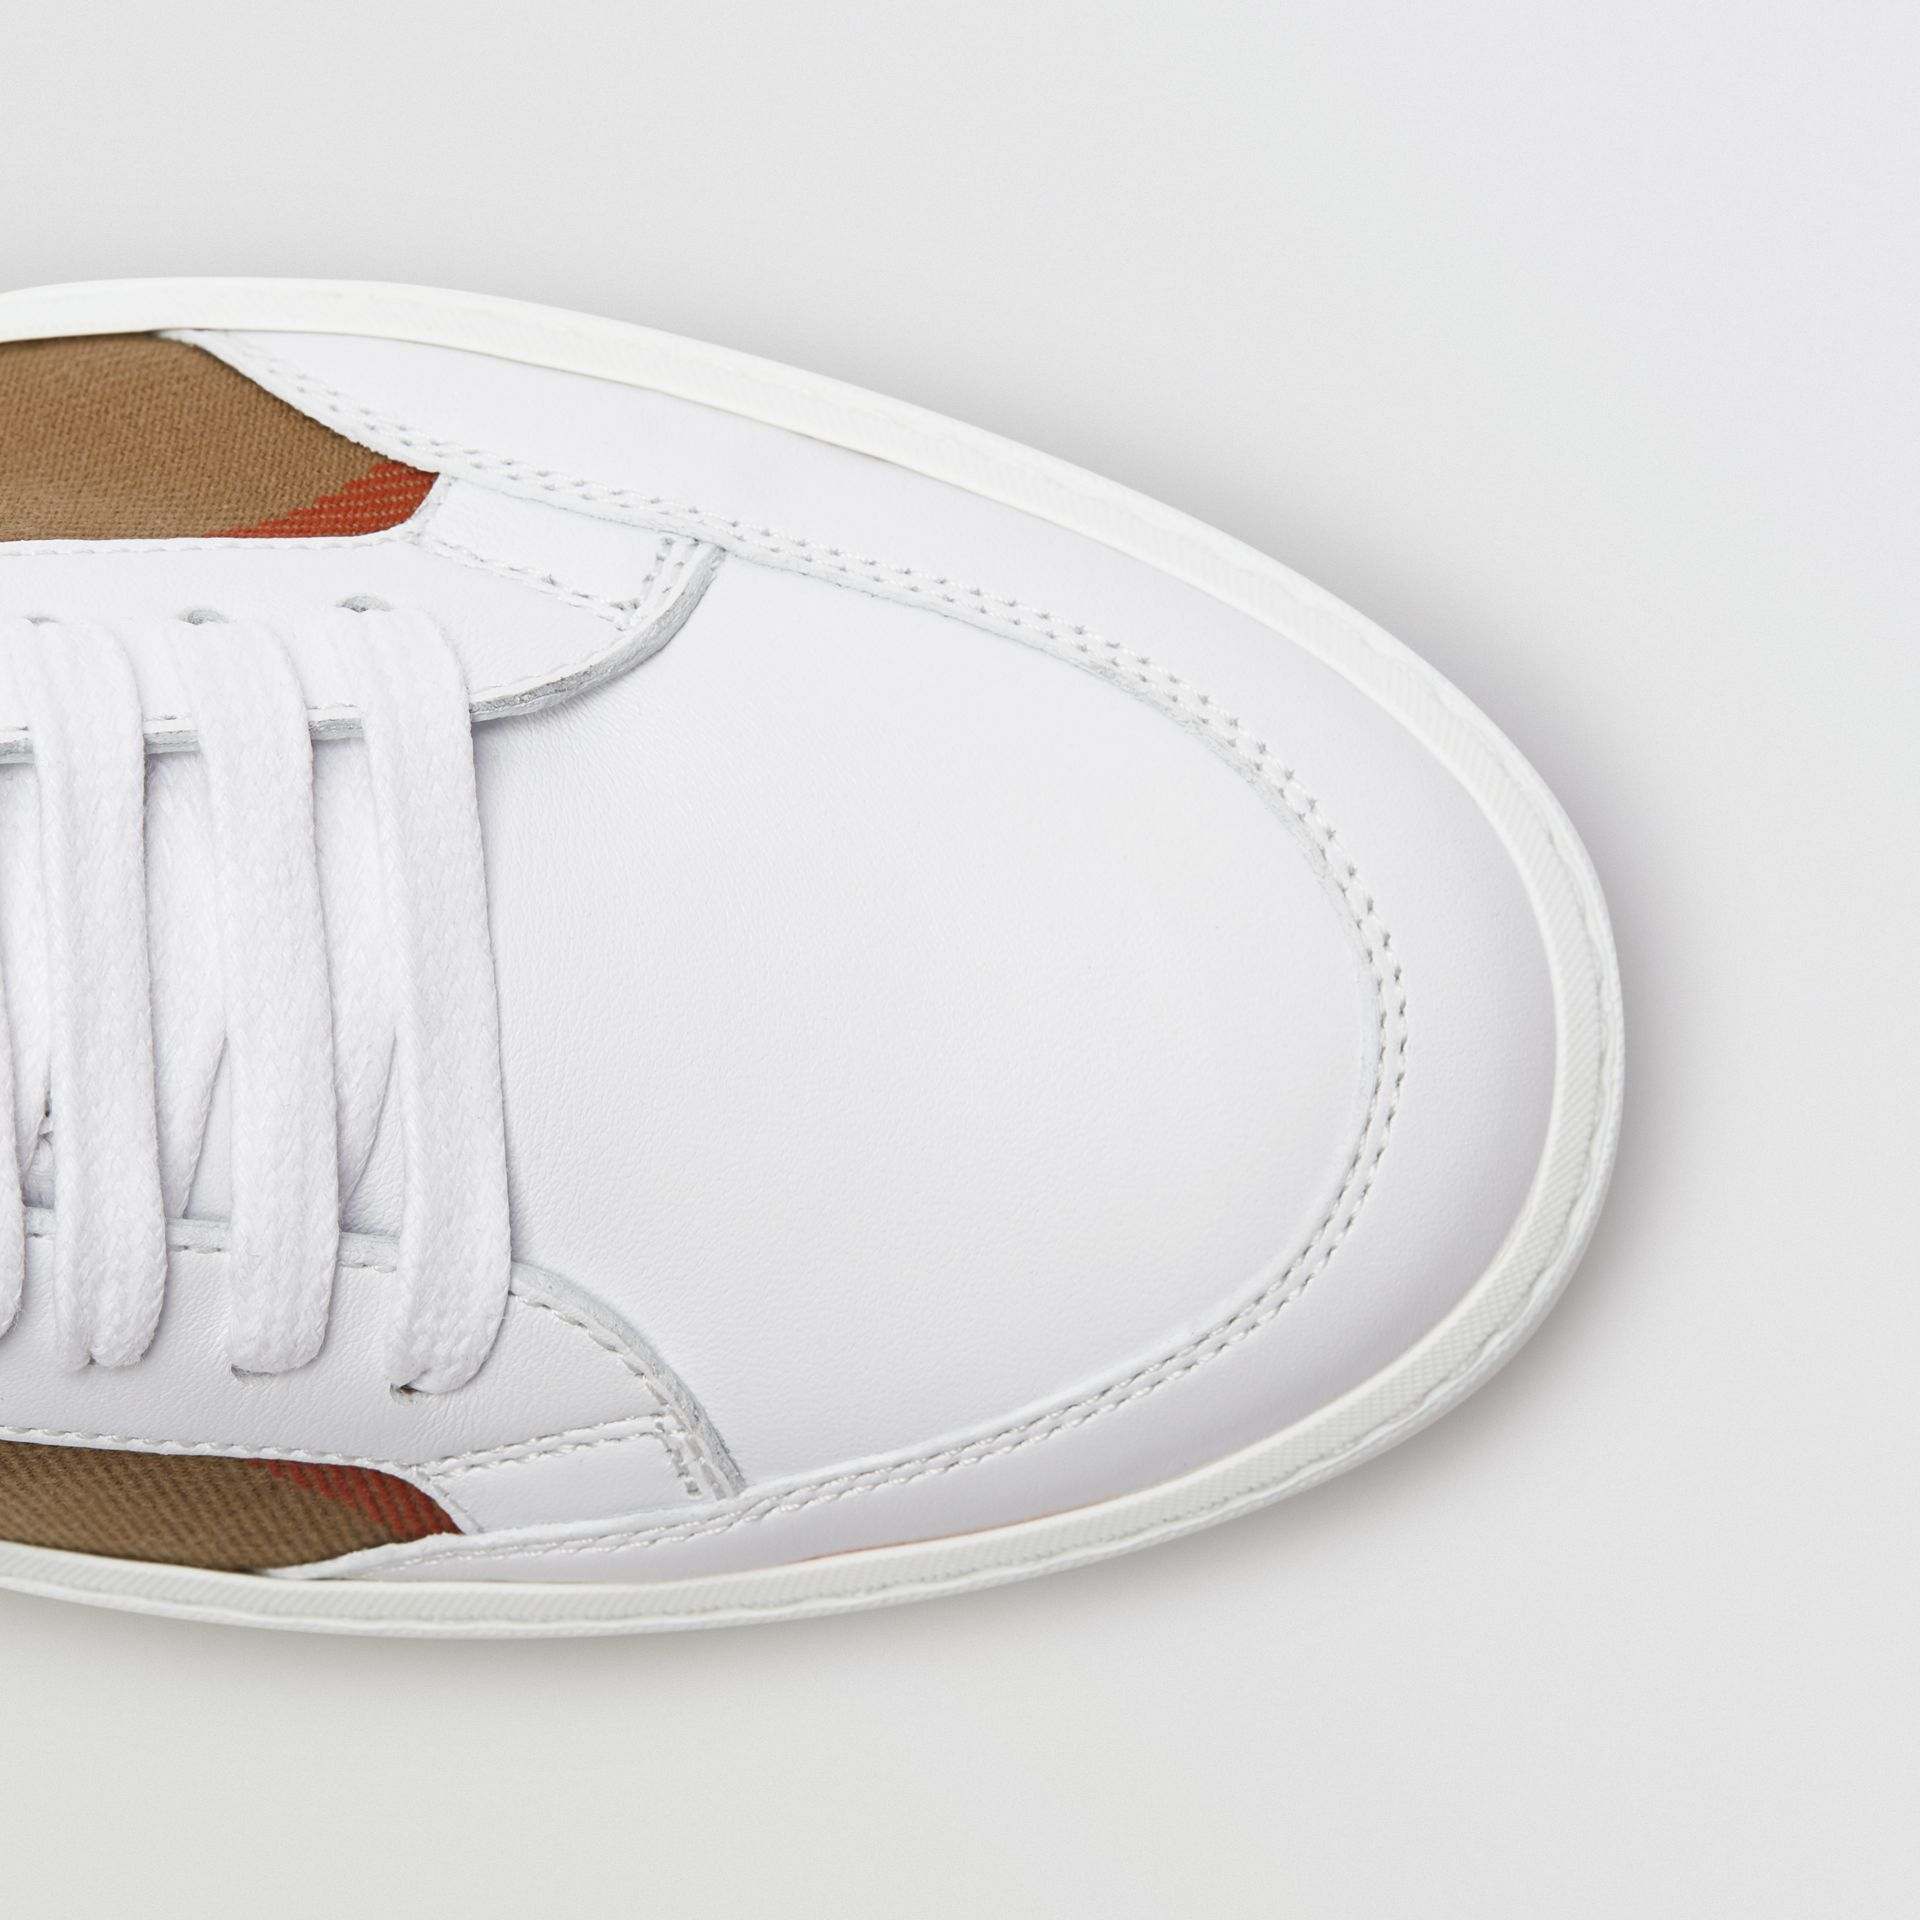 Check Detail Leather Sneakers in House Check/ Optic White - Women | Burberry United Kingdom - gallery image 1